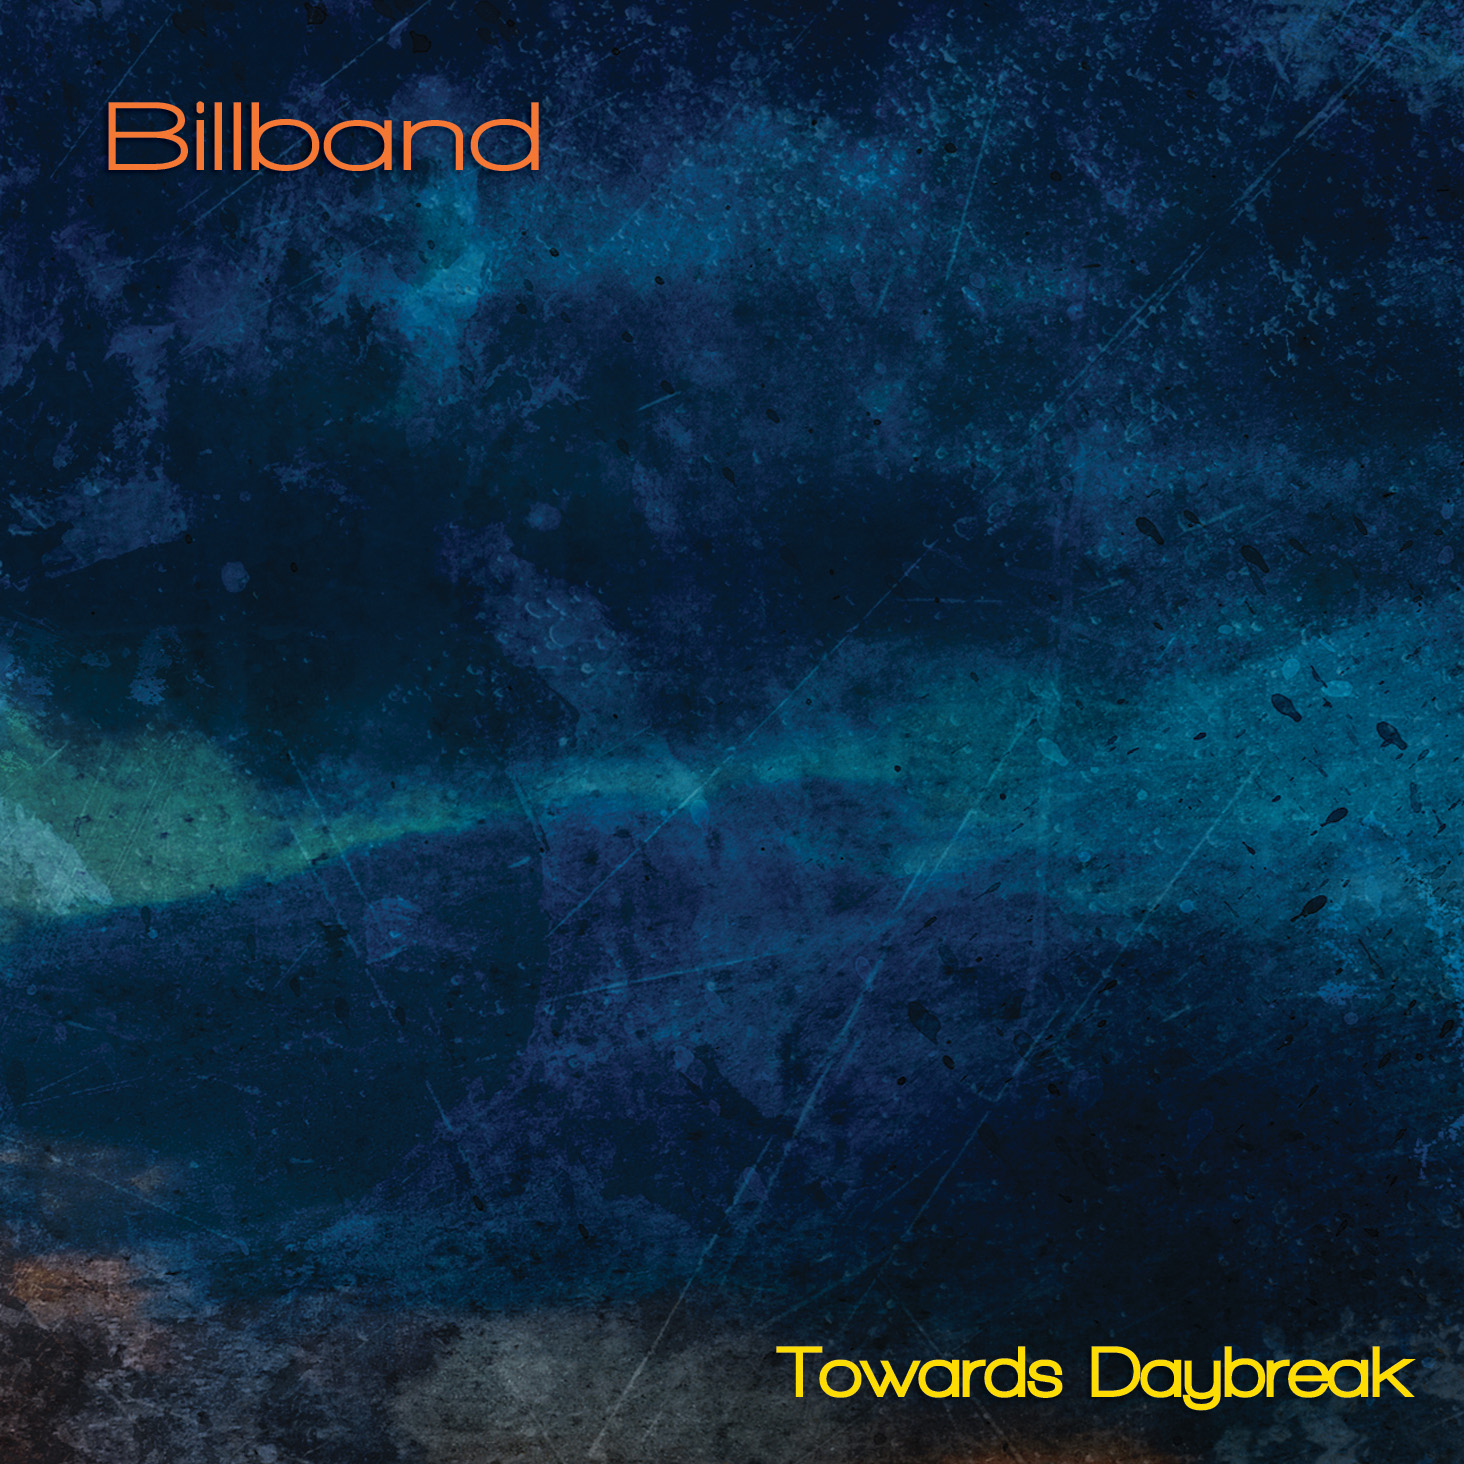 Caption: Billband - Towards Daybreak, Credit: Innova